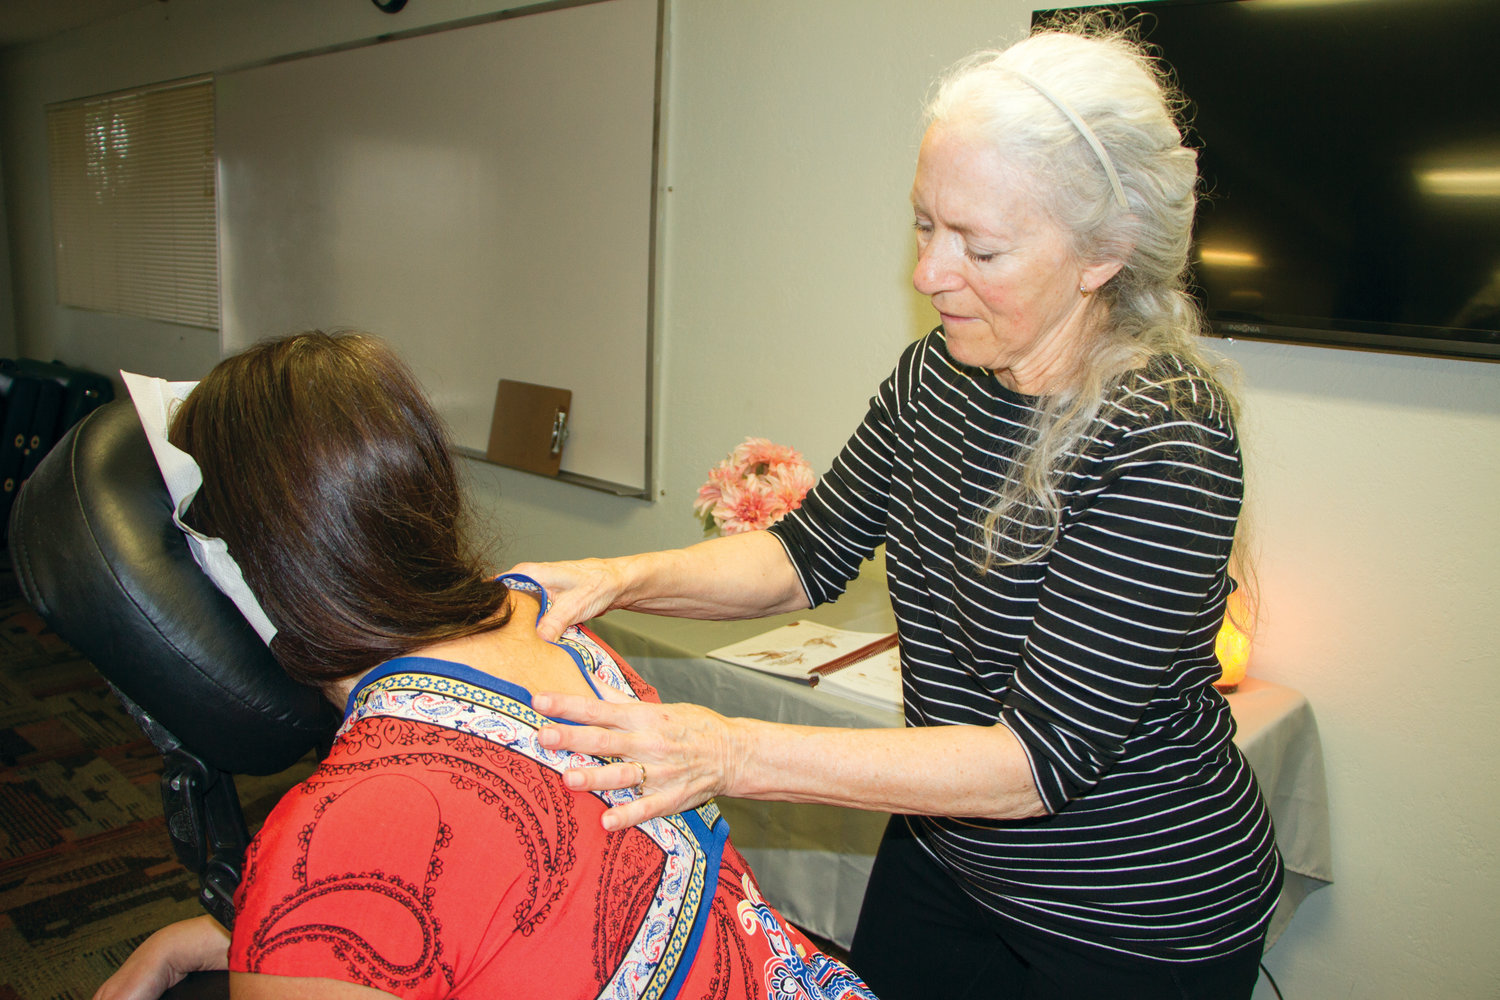 Port Townsend School of Massage student Leslie Tapper receives a demonstration massage from instructor Johanna Perkins.